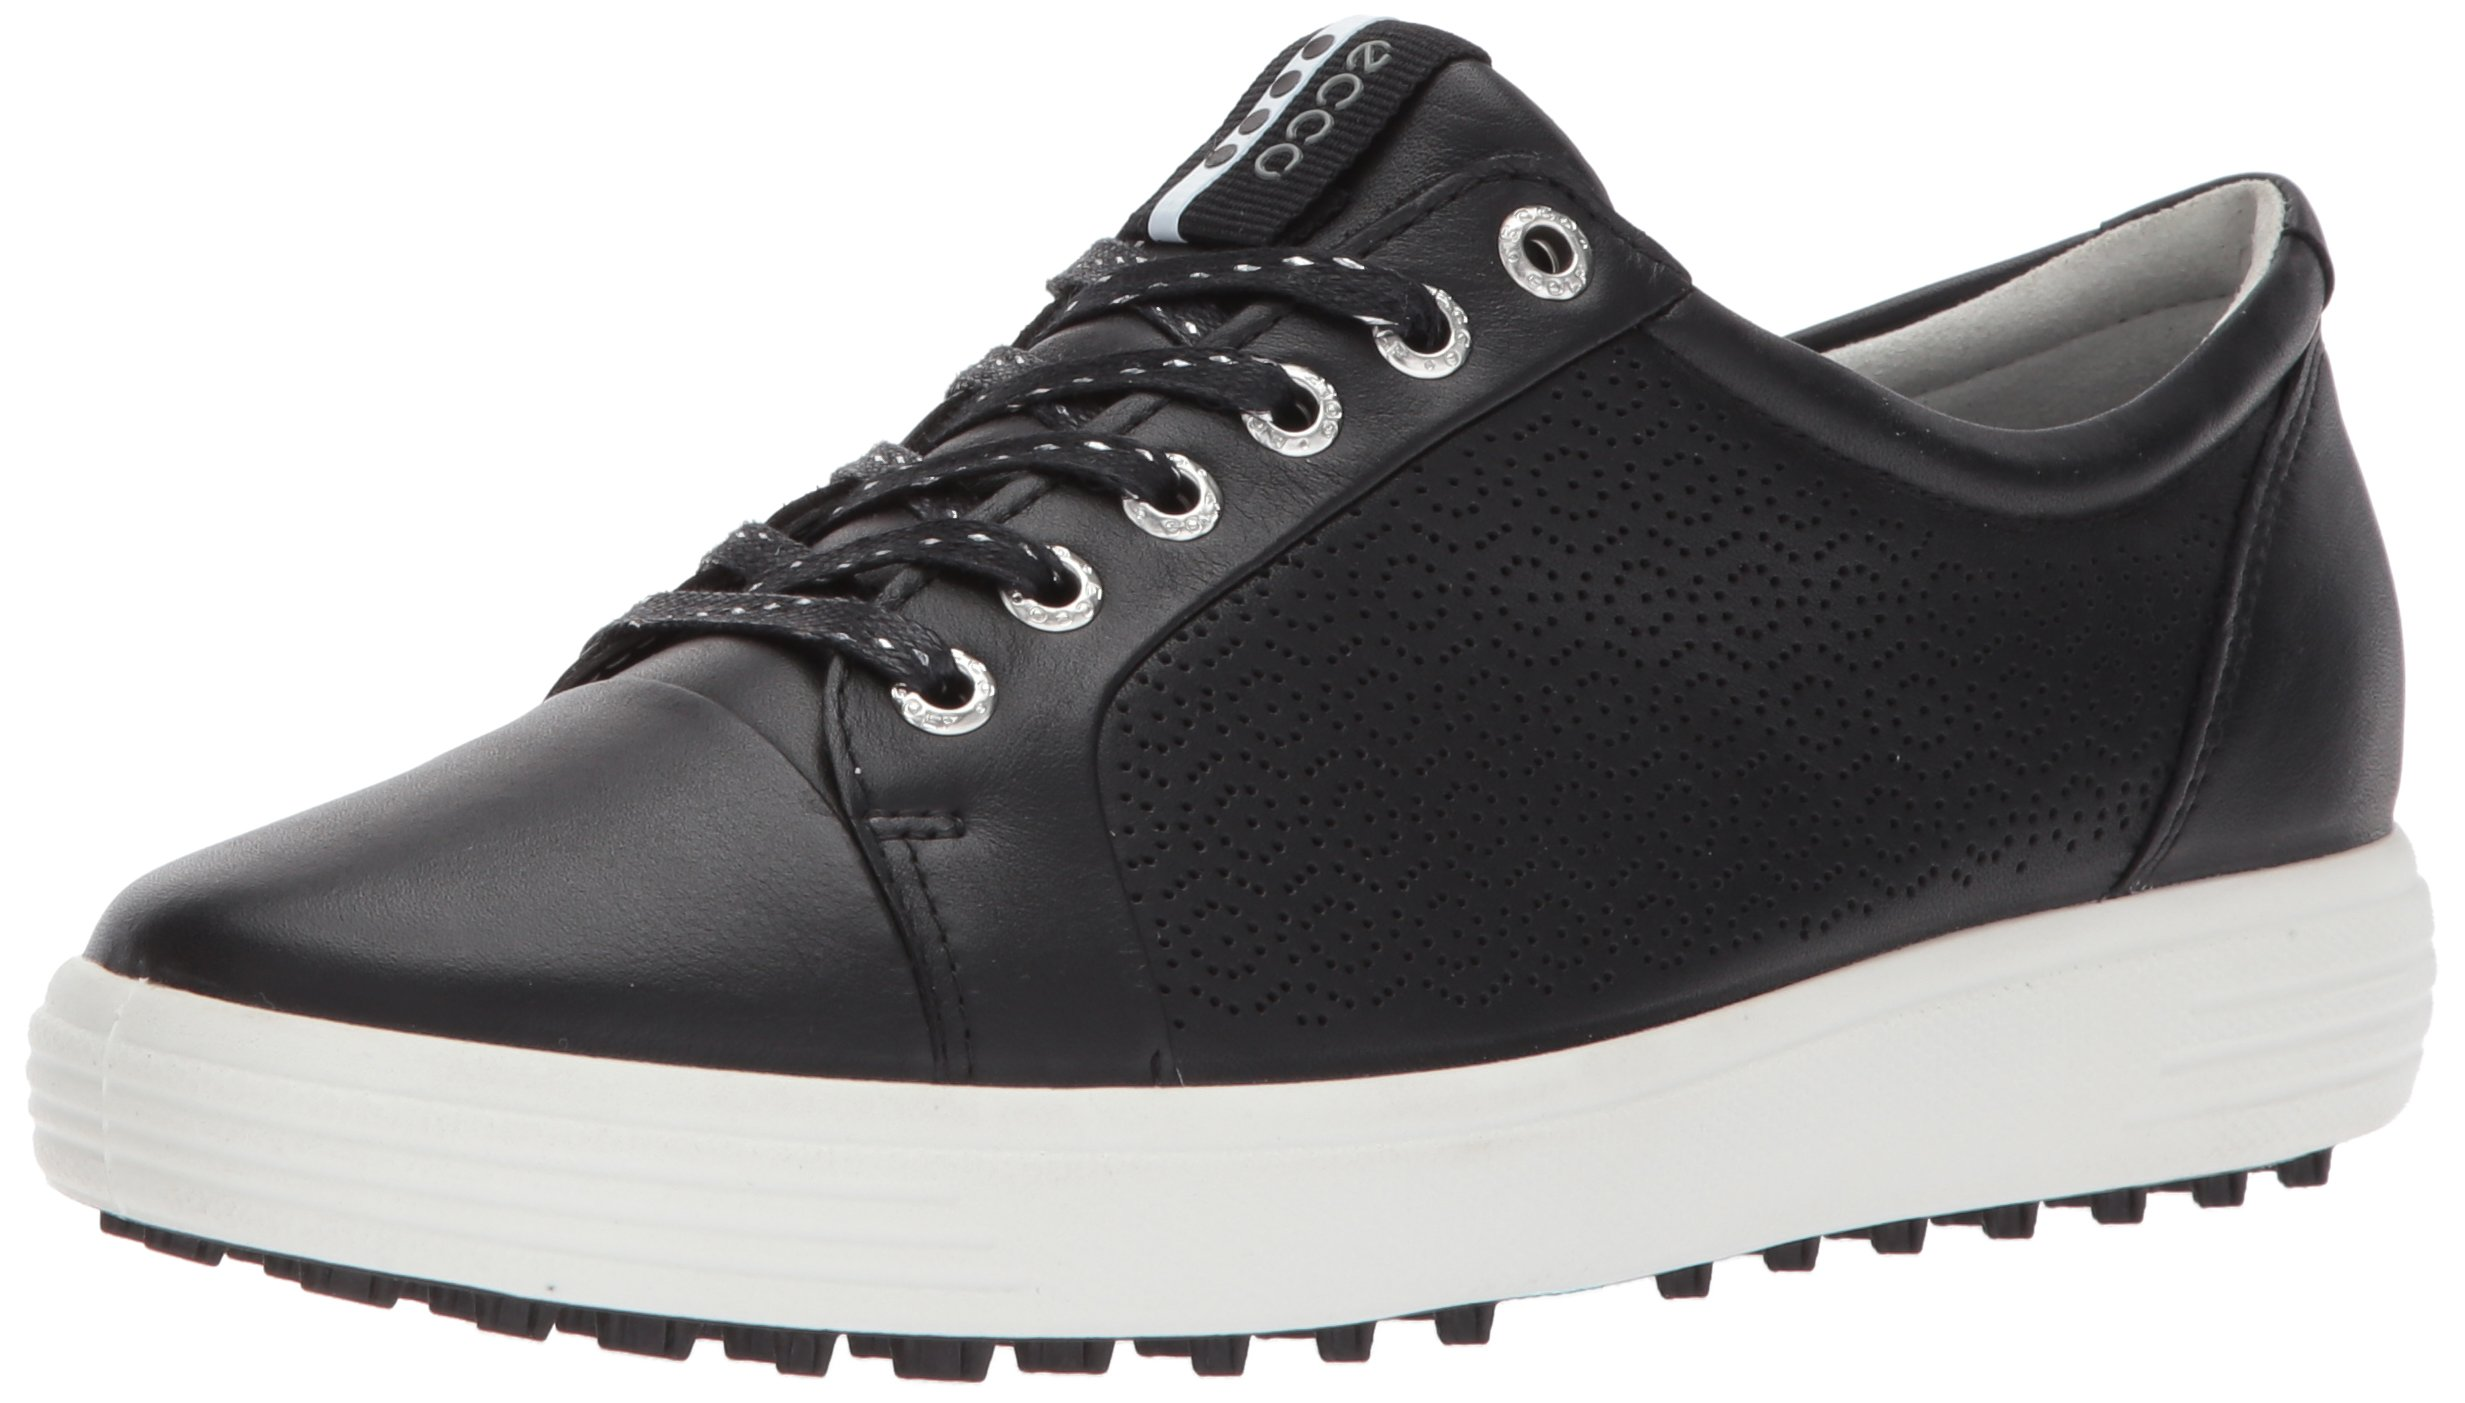 ECCO Women's Casual Hybrid 2 Golf Shoe, Black, 39 EU/8-8.5 M US by ECCO